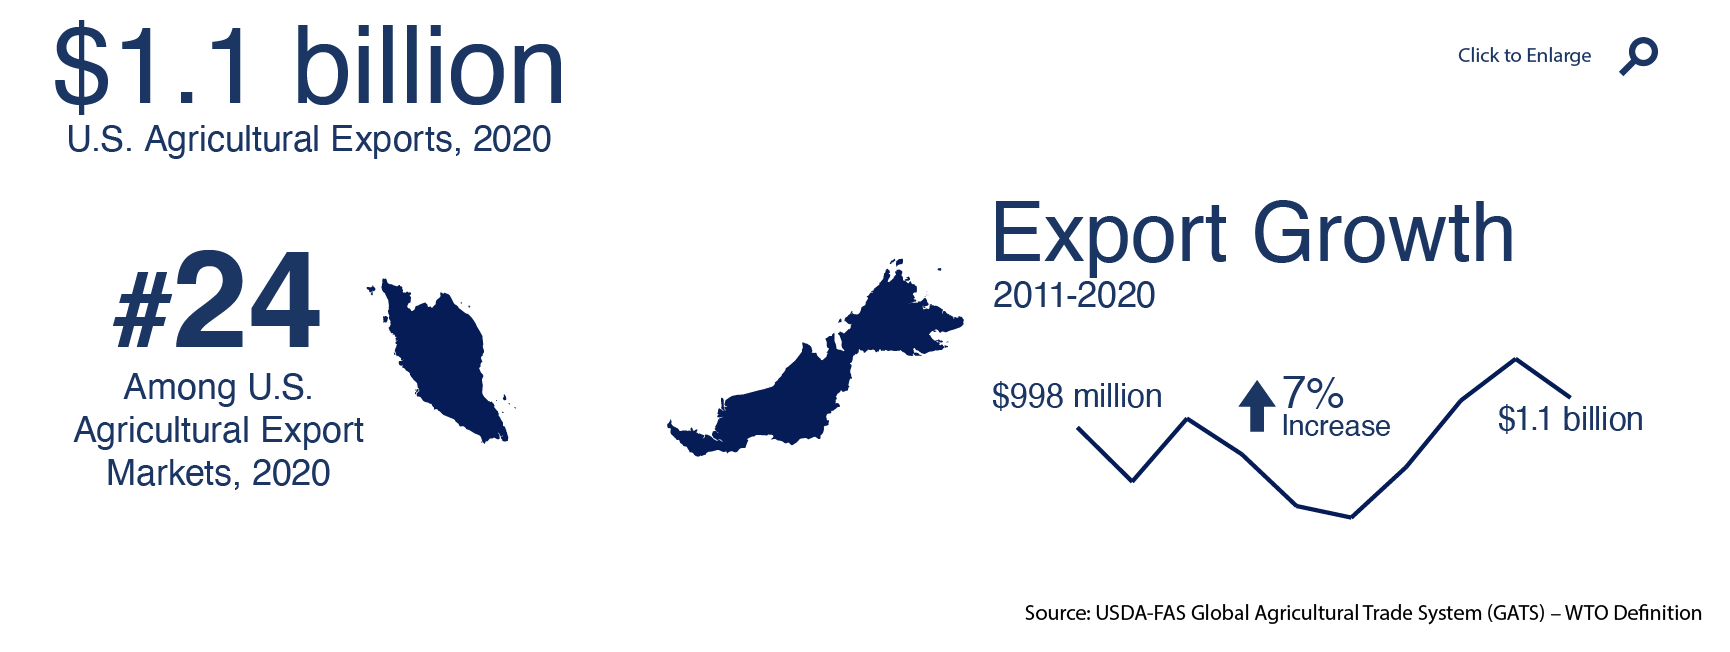 Infographic showing U.S. agricultural exports to Malaysia in 2020